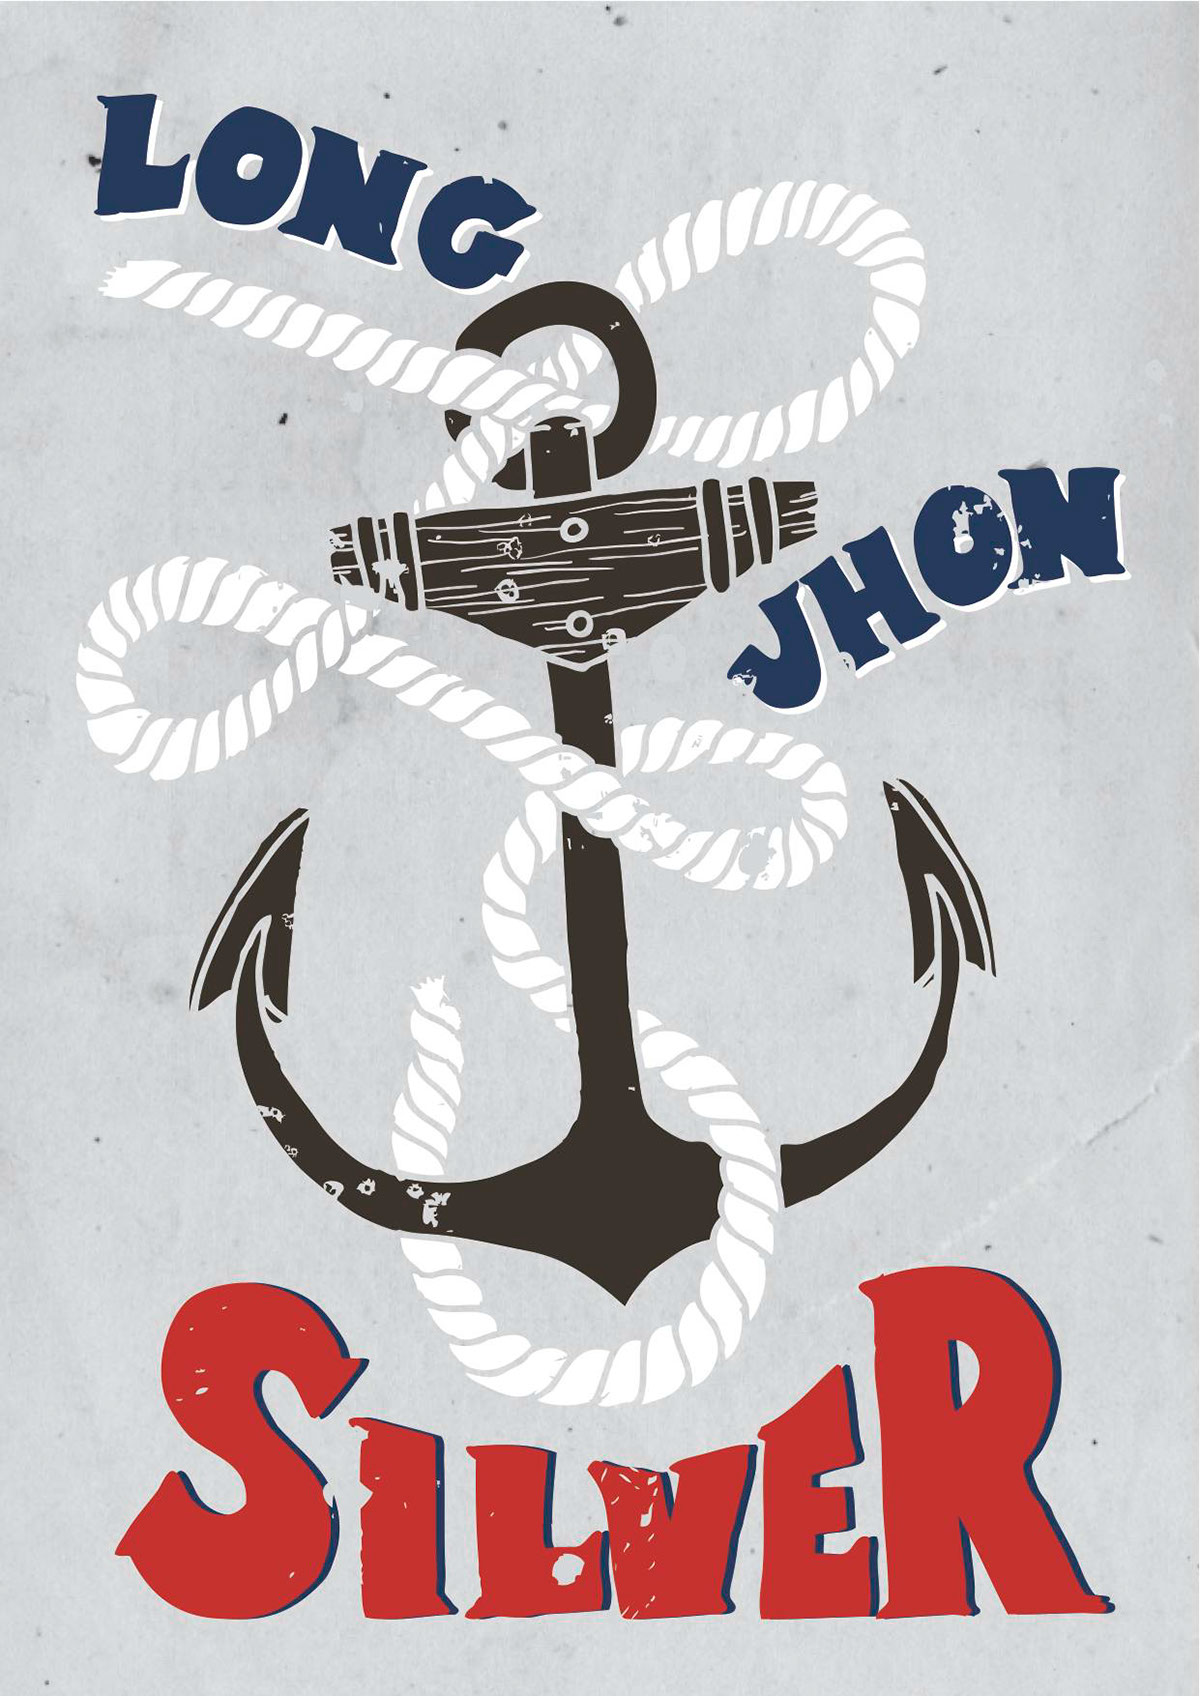 HAND LETTERING Sailor nautical sailor danny illustrations vintage Retro Clothing Style hand craft tattoo rose lettering